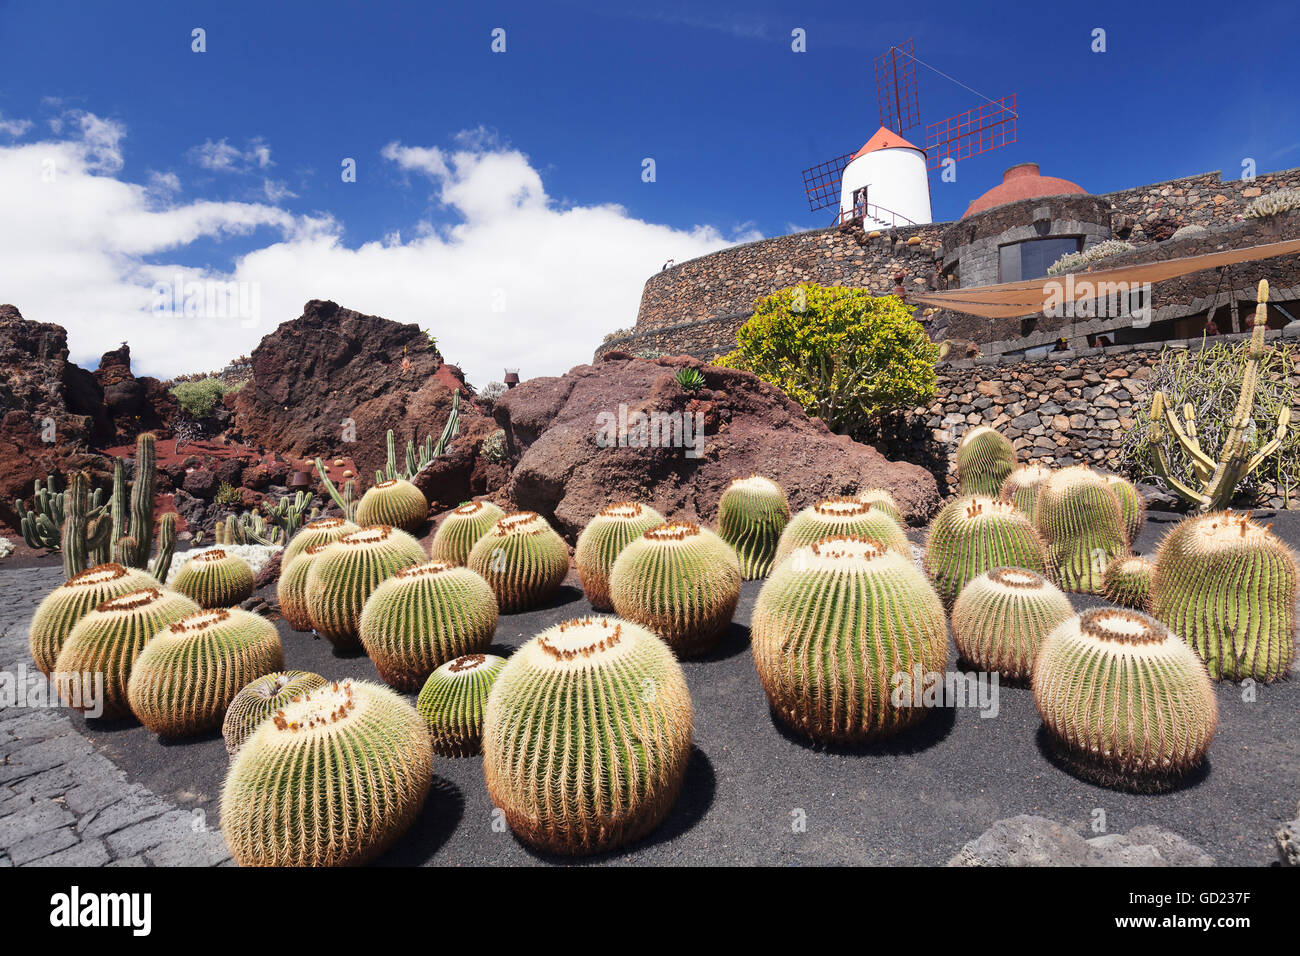 Cactus garden jardin de cactus by cesar manrique wind mill unesco stock photo royalty free - Jardin de cactus ...